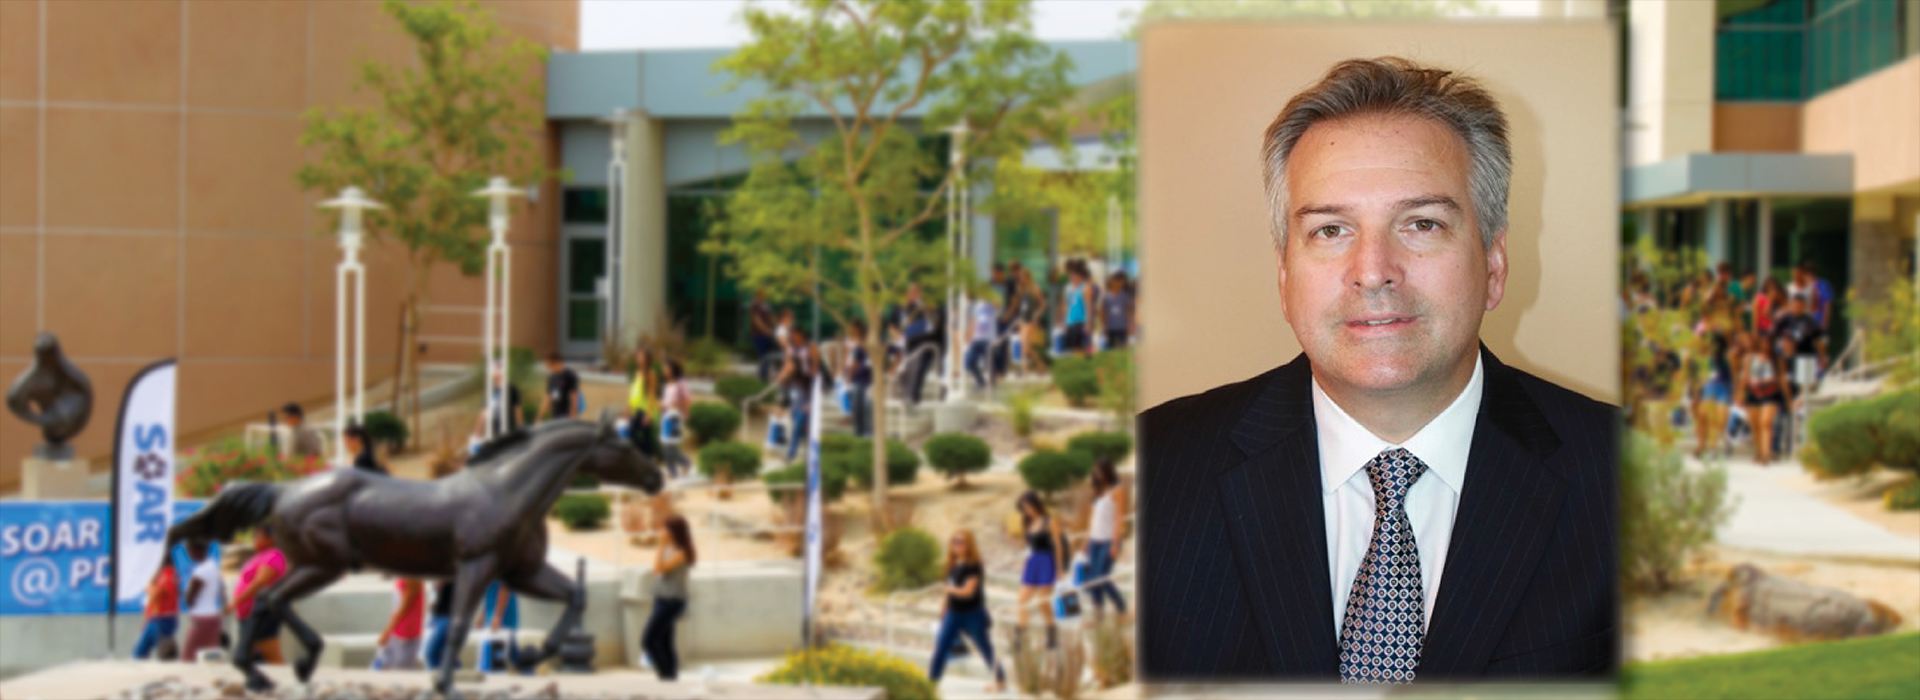 Director for new Hospitality Management Program at CSUSB Palm Desert Campus selected